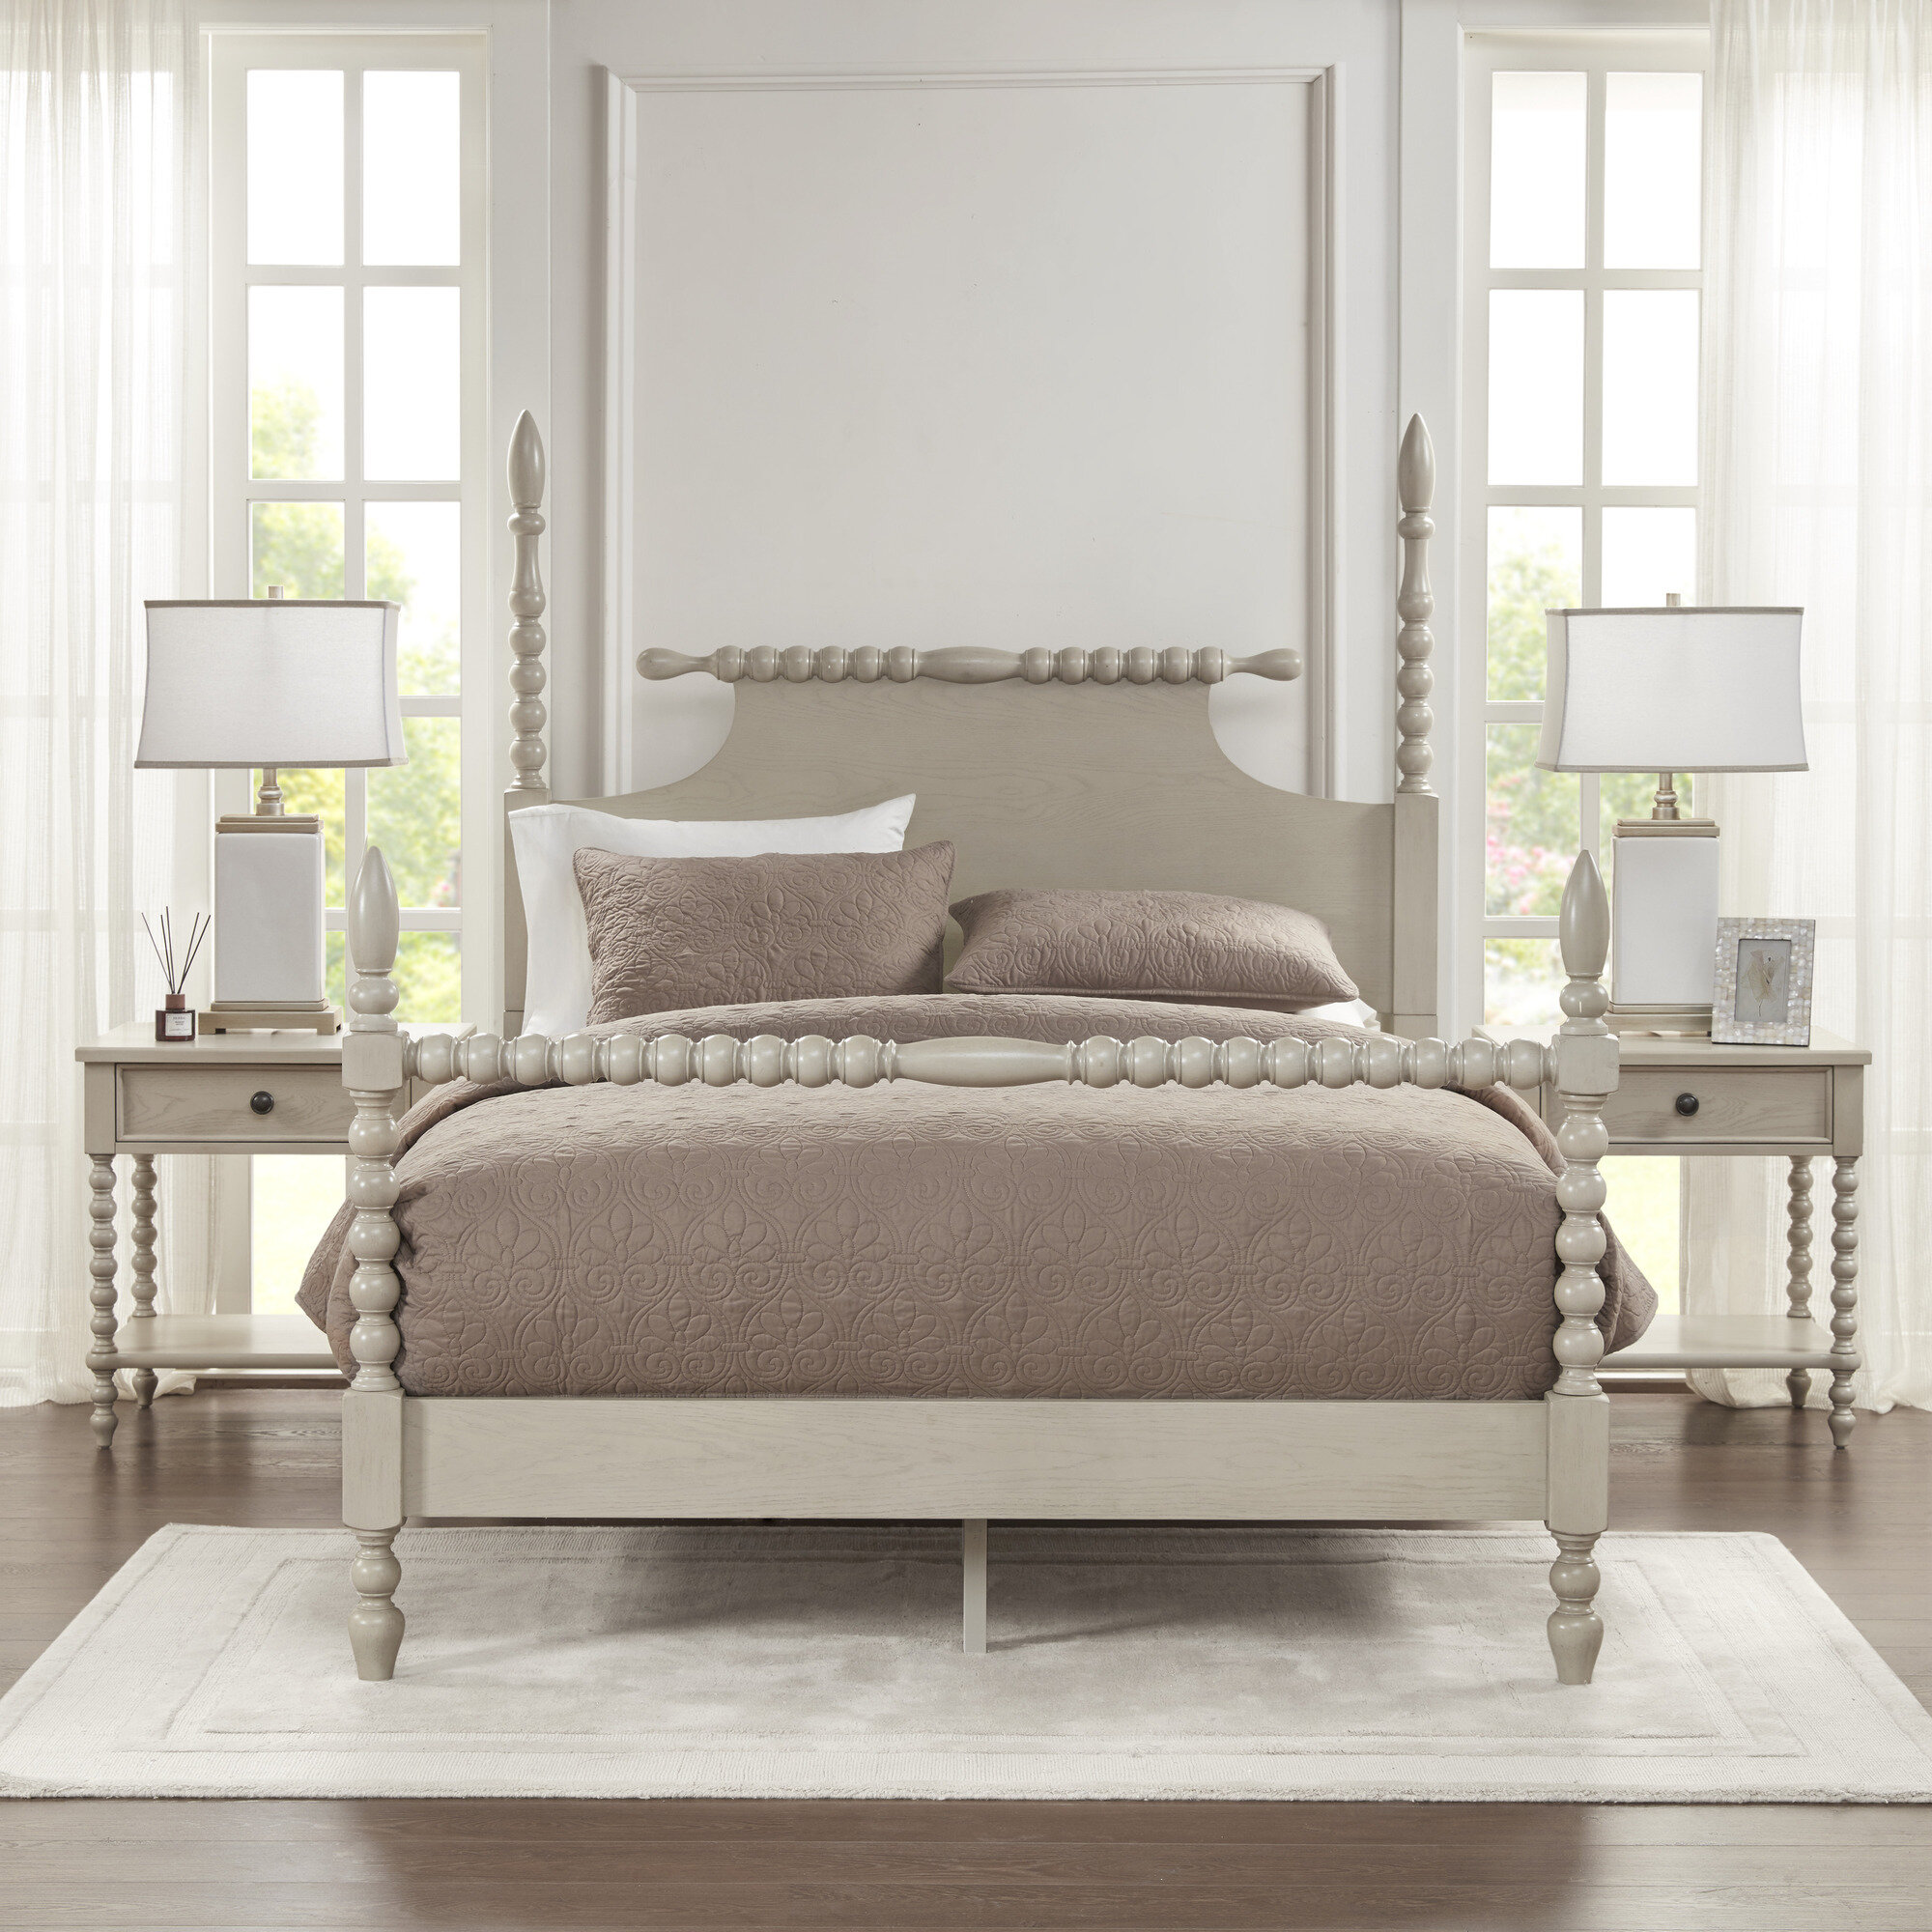 Madison Park Signature Beckett Low Profile Four Poster Bed Reviews Wayfair